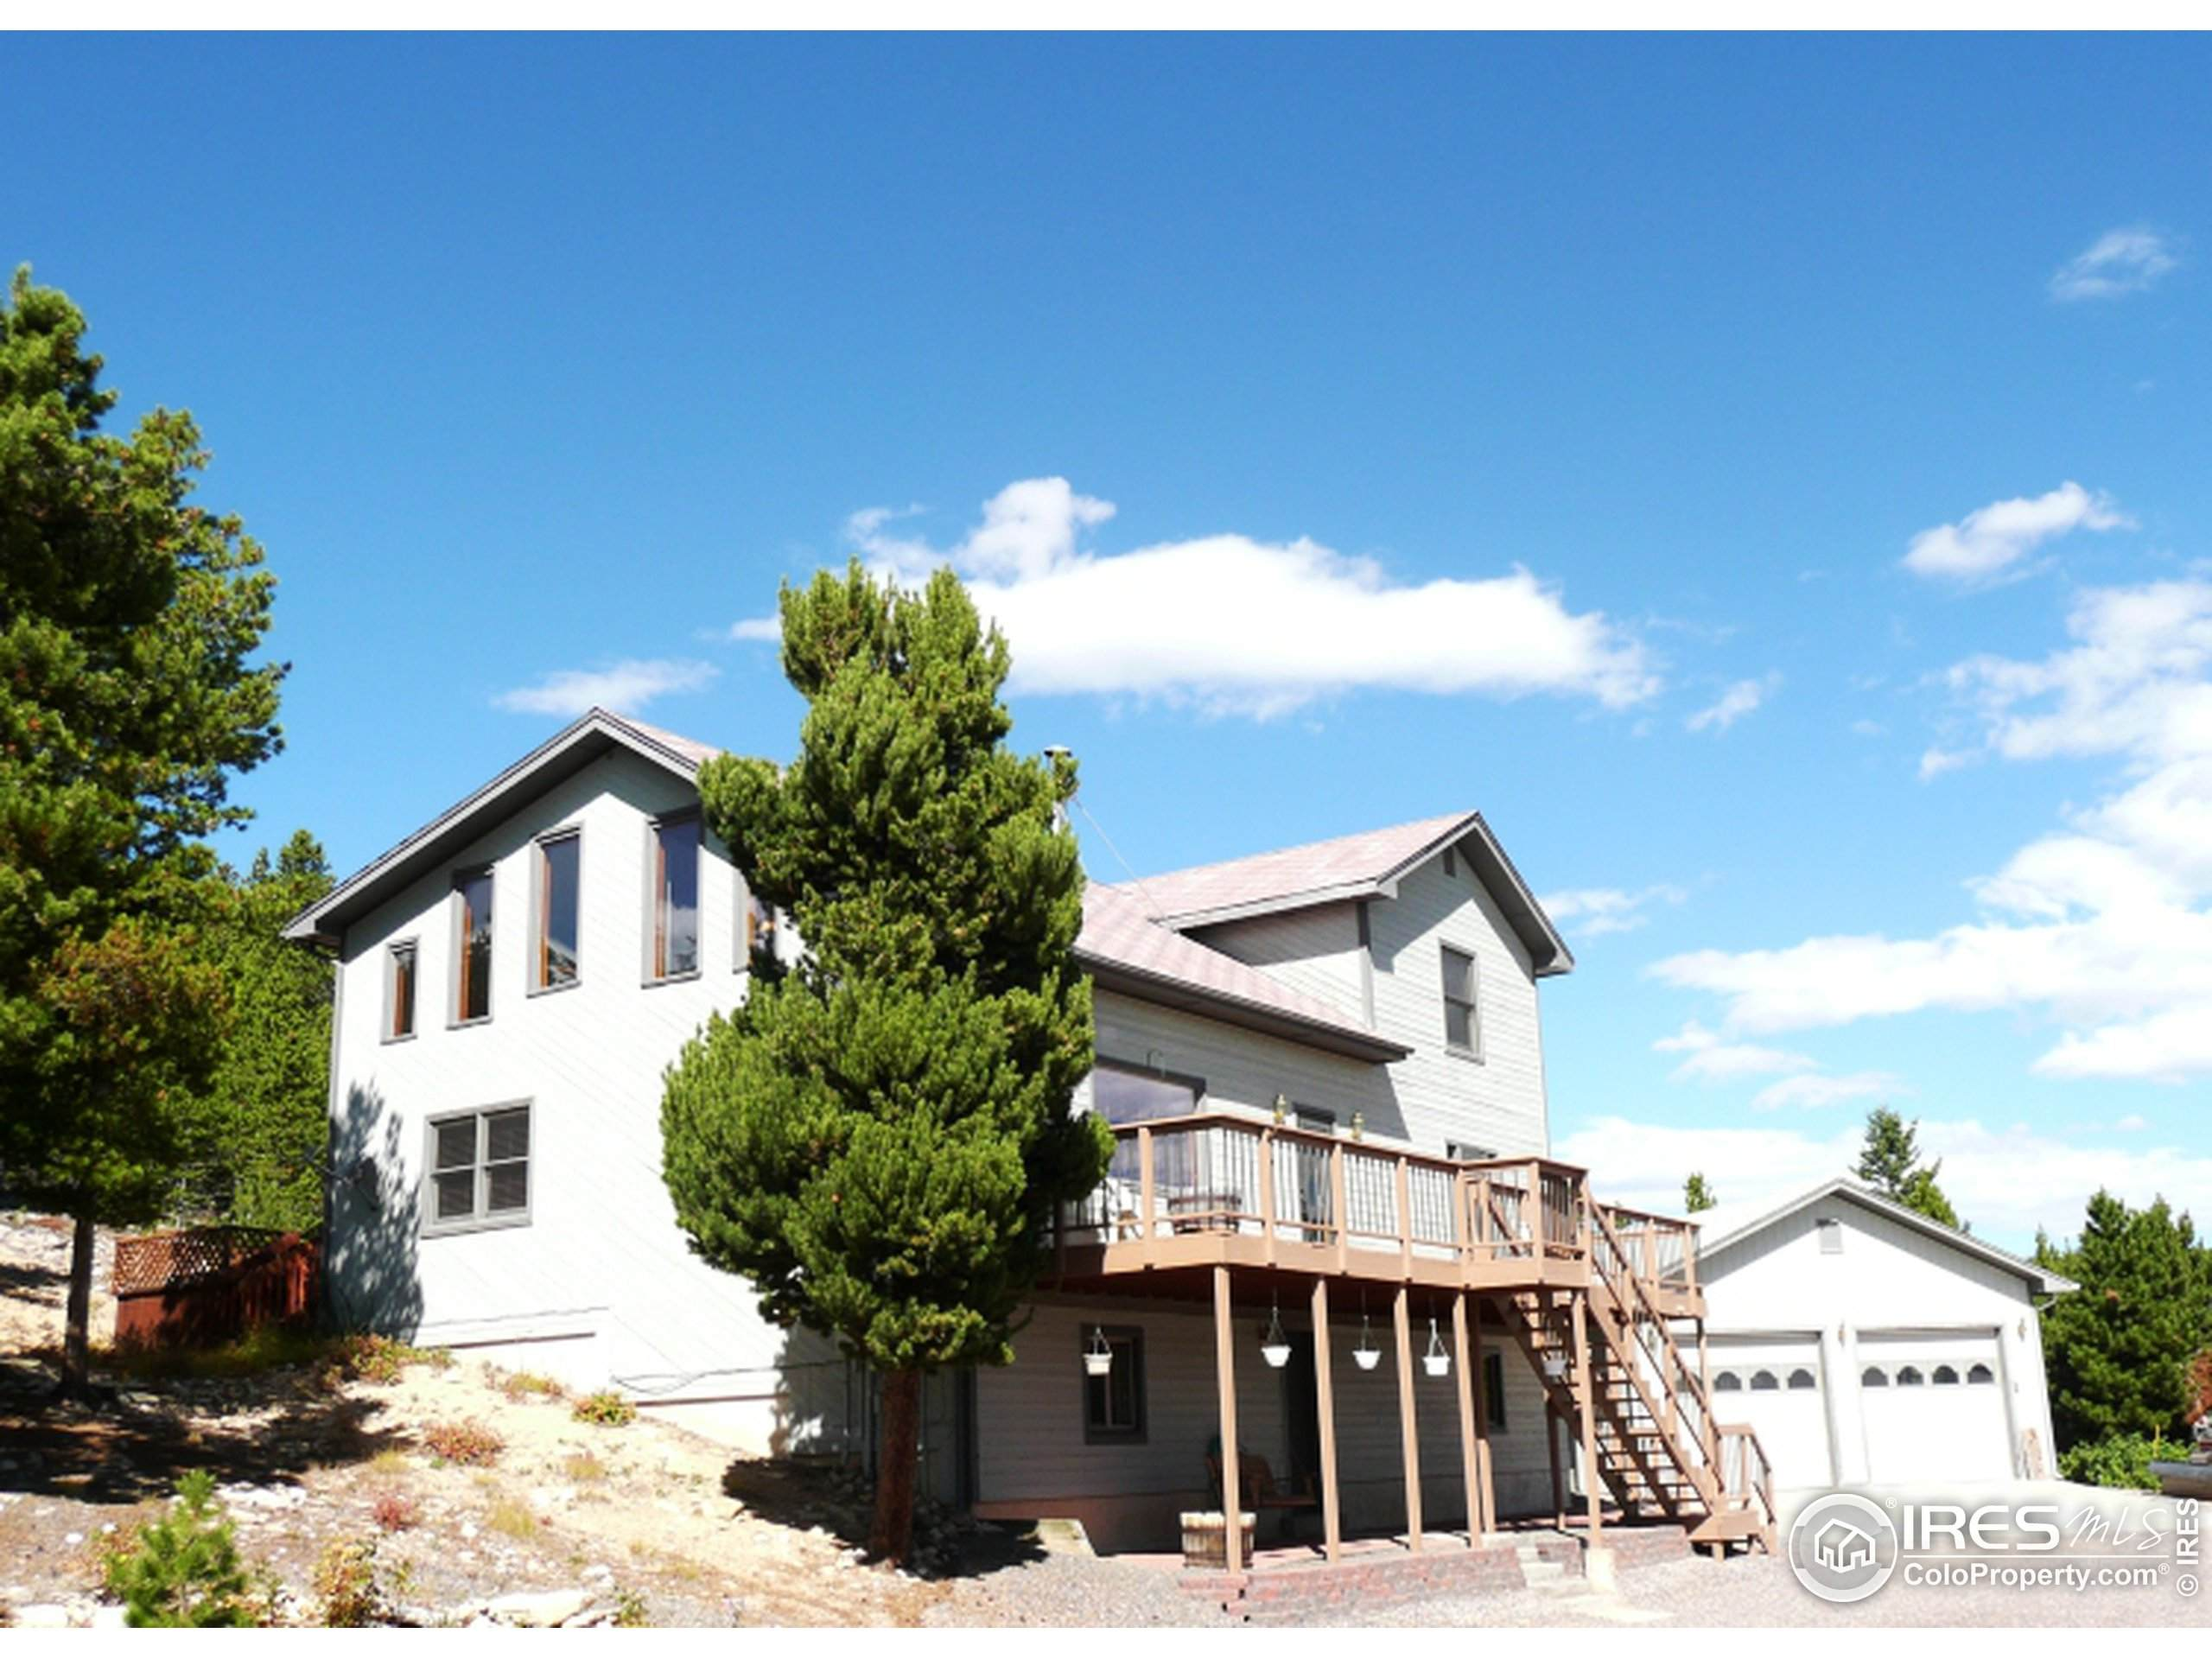 485 Pioneer Ln, Johnstown, CO 80534 (MLS #939473) :: Kittle Real Estate